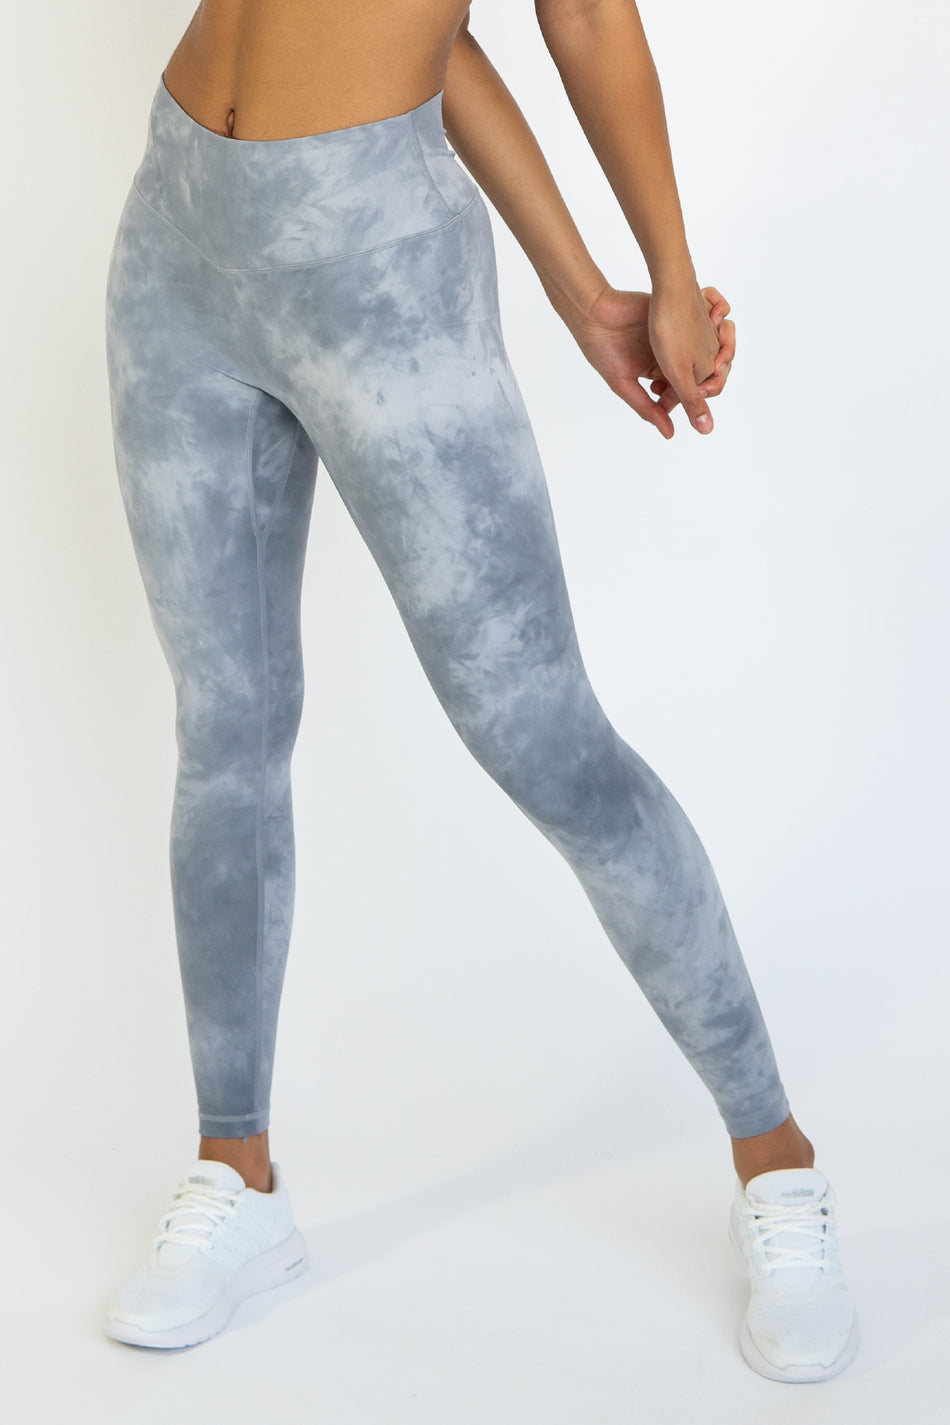 TieDye Leggings - Blue/Silver - WearWolf Clothing UK